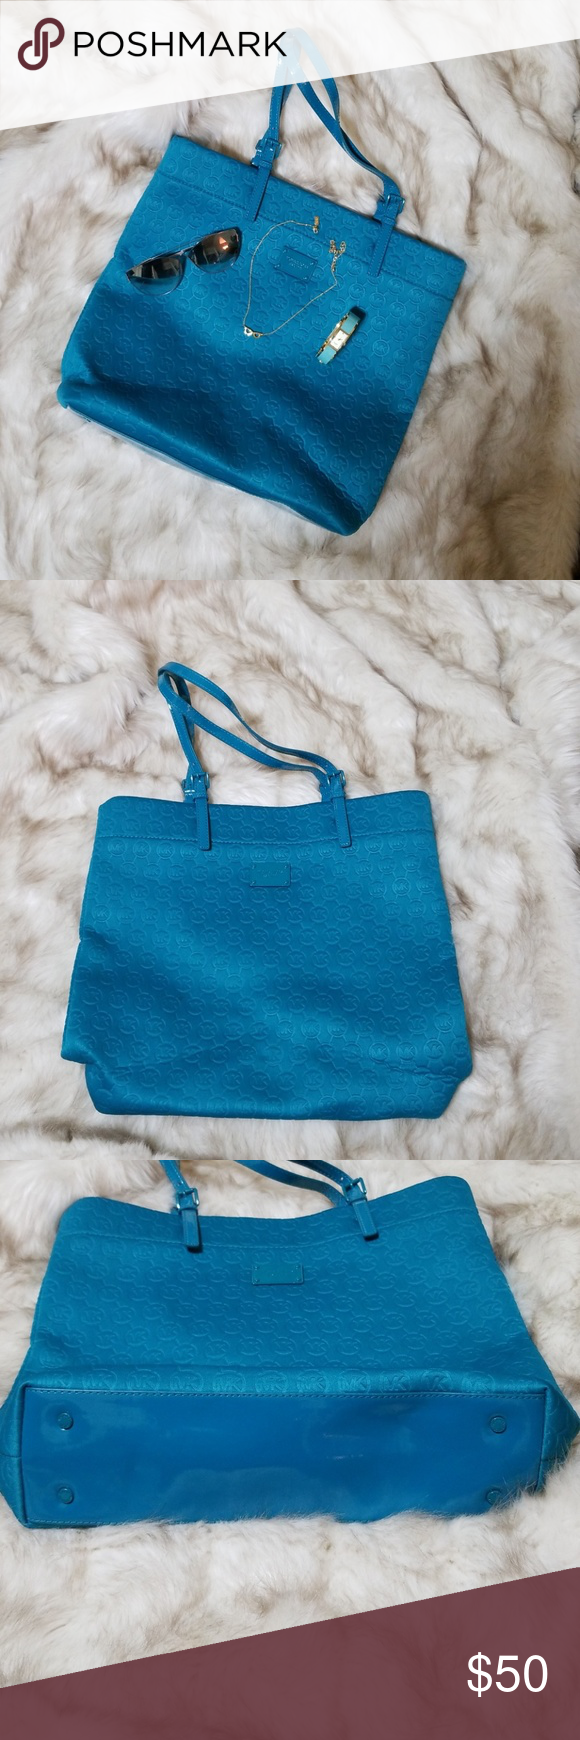 1be122463d8b Michael Kors Neoprene tote Teal neoprene tote, doubles as a great work or  school tote! Has a few pen marks on the lining... otherwise is great tote!!